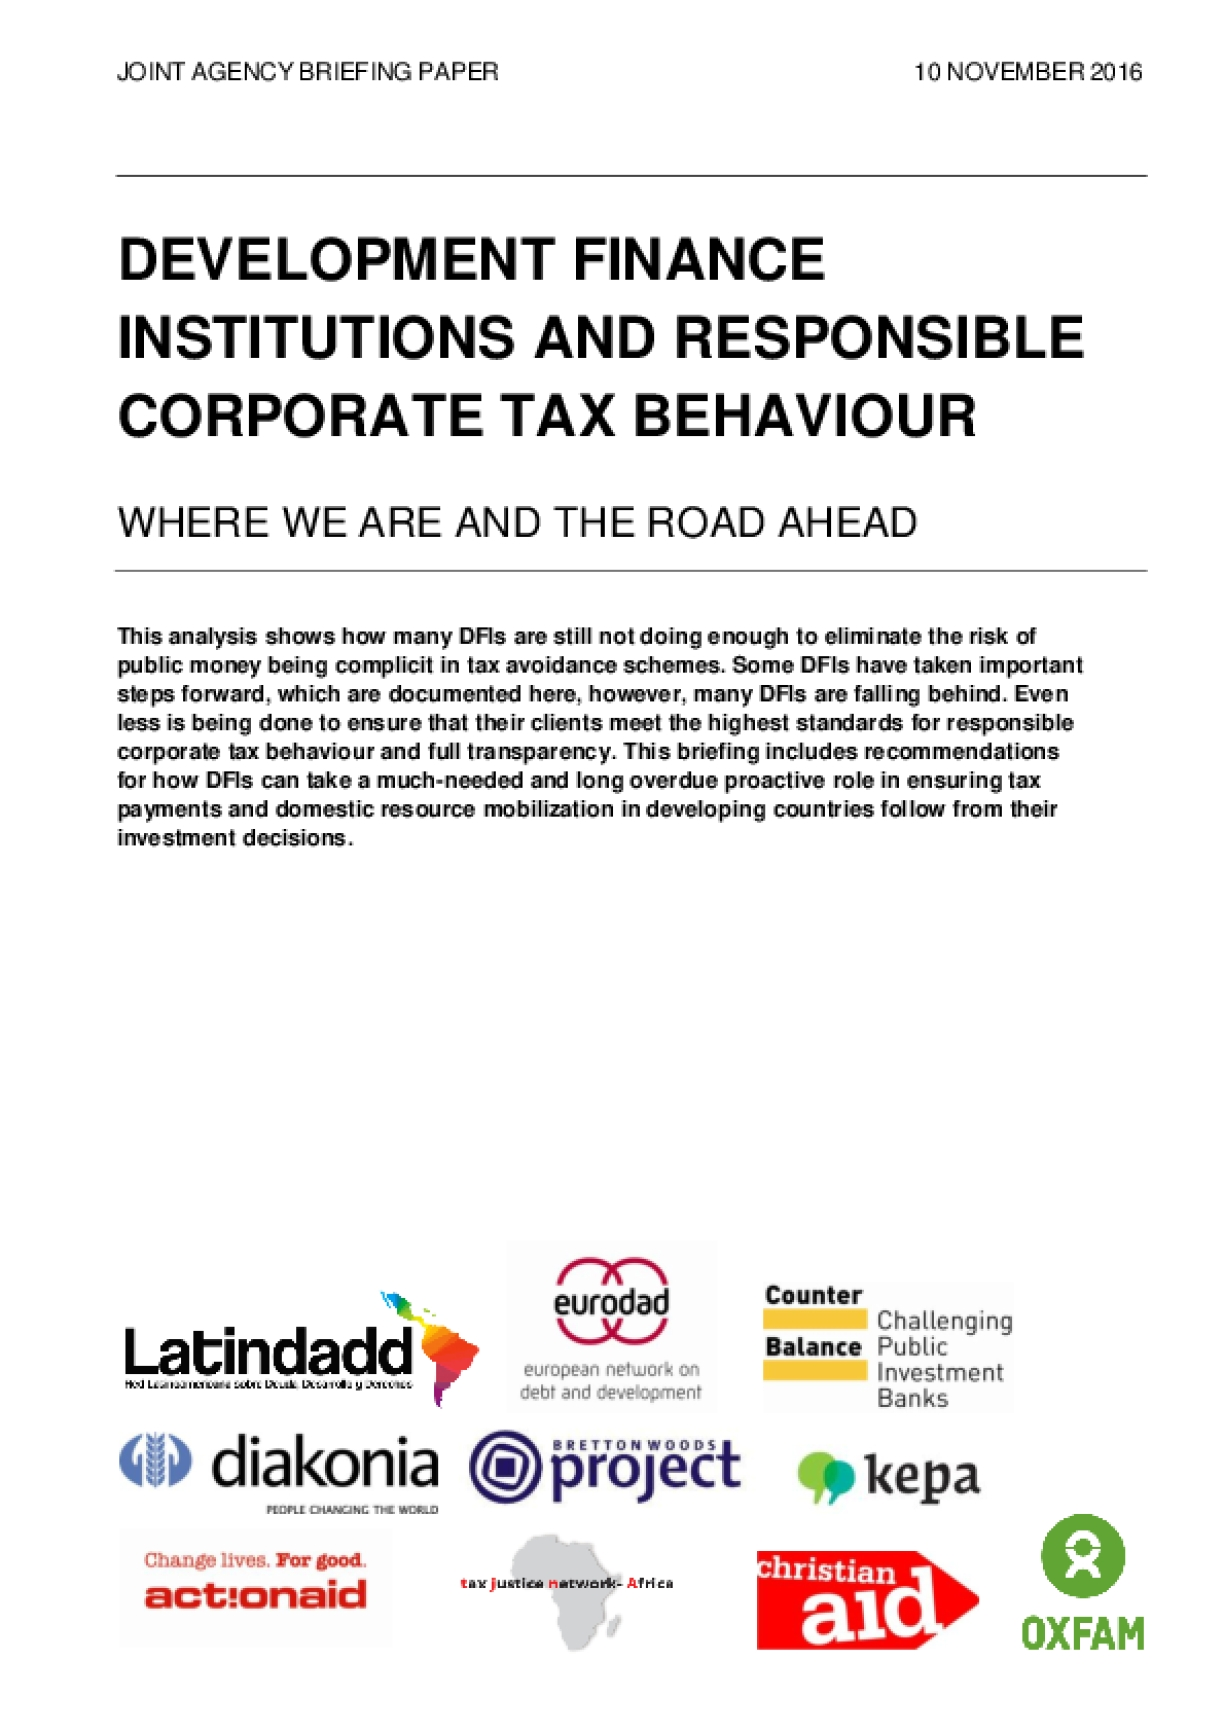 Development Finance Institutions and Responsible Corporate Tax Behaviour: Where We Are, and the Road Ahead